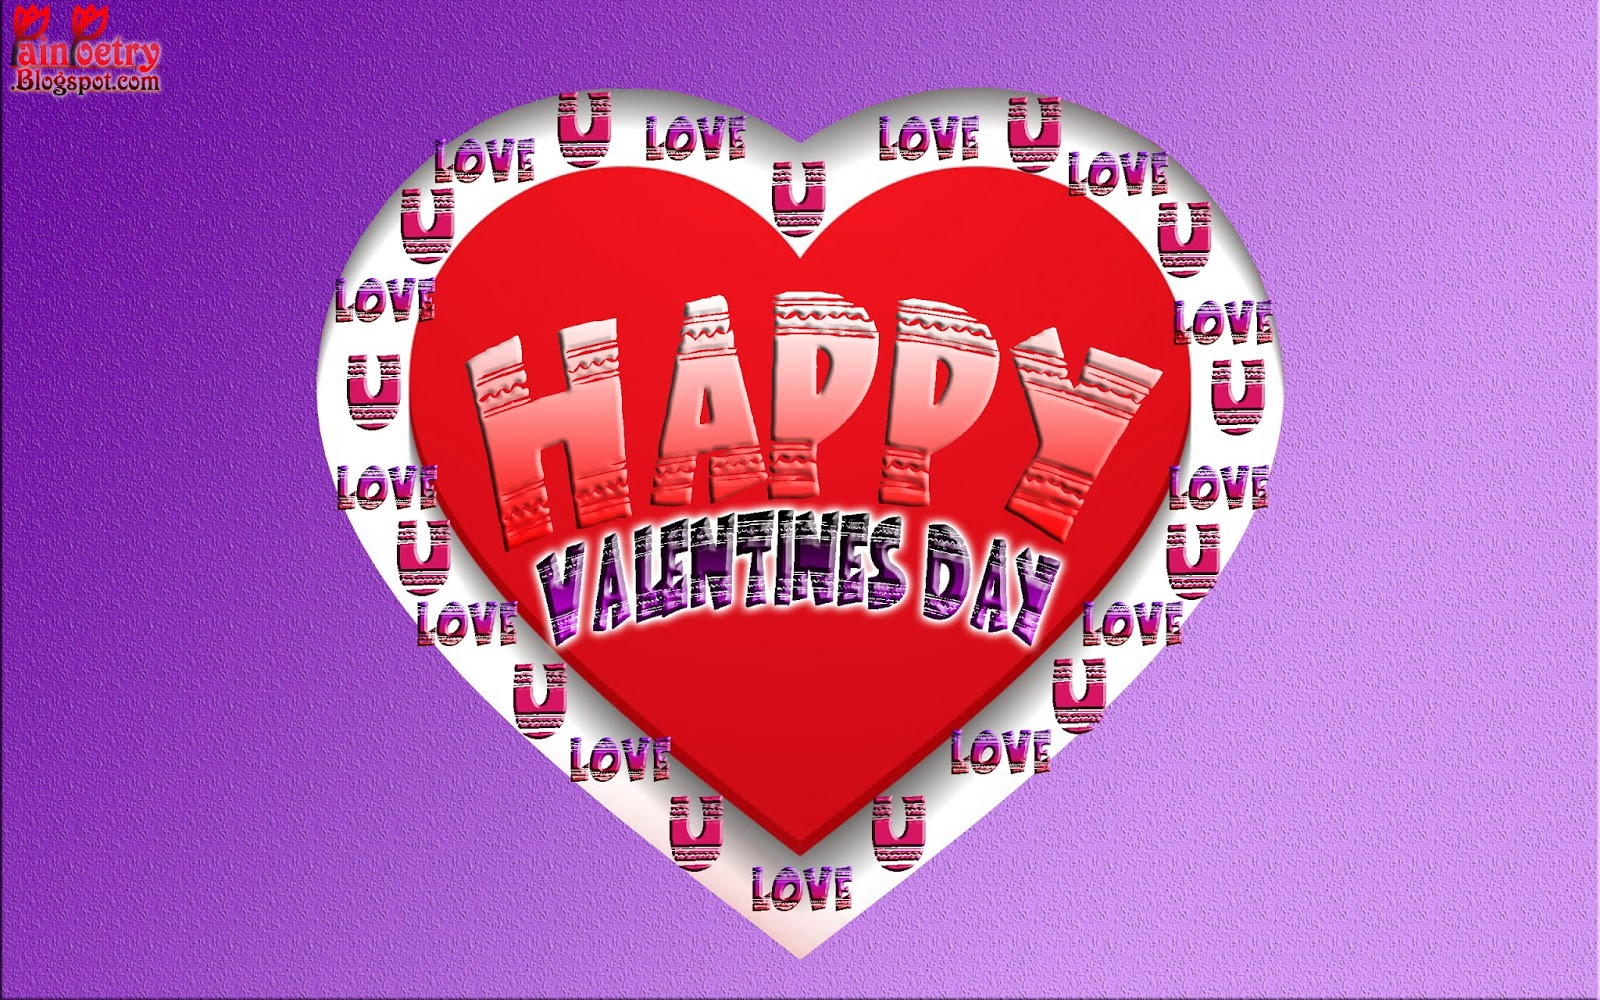 Happy-Valentines-Day-Wishes-Image-Wide-HD